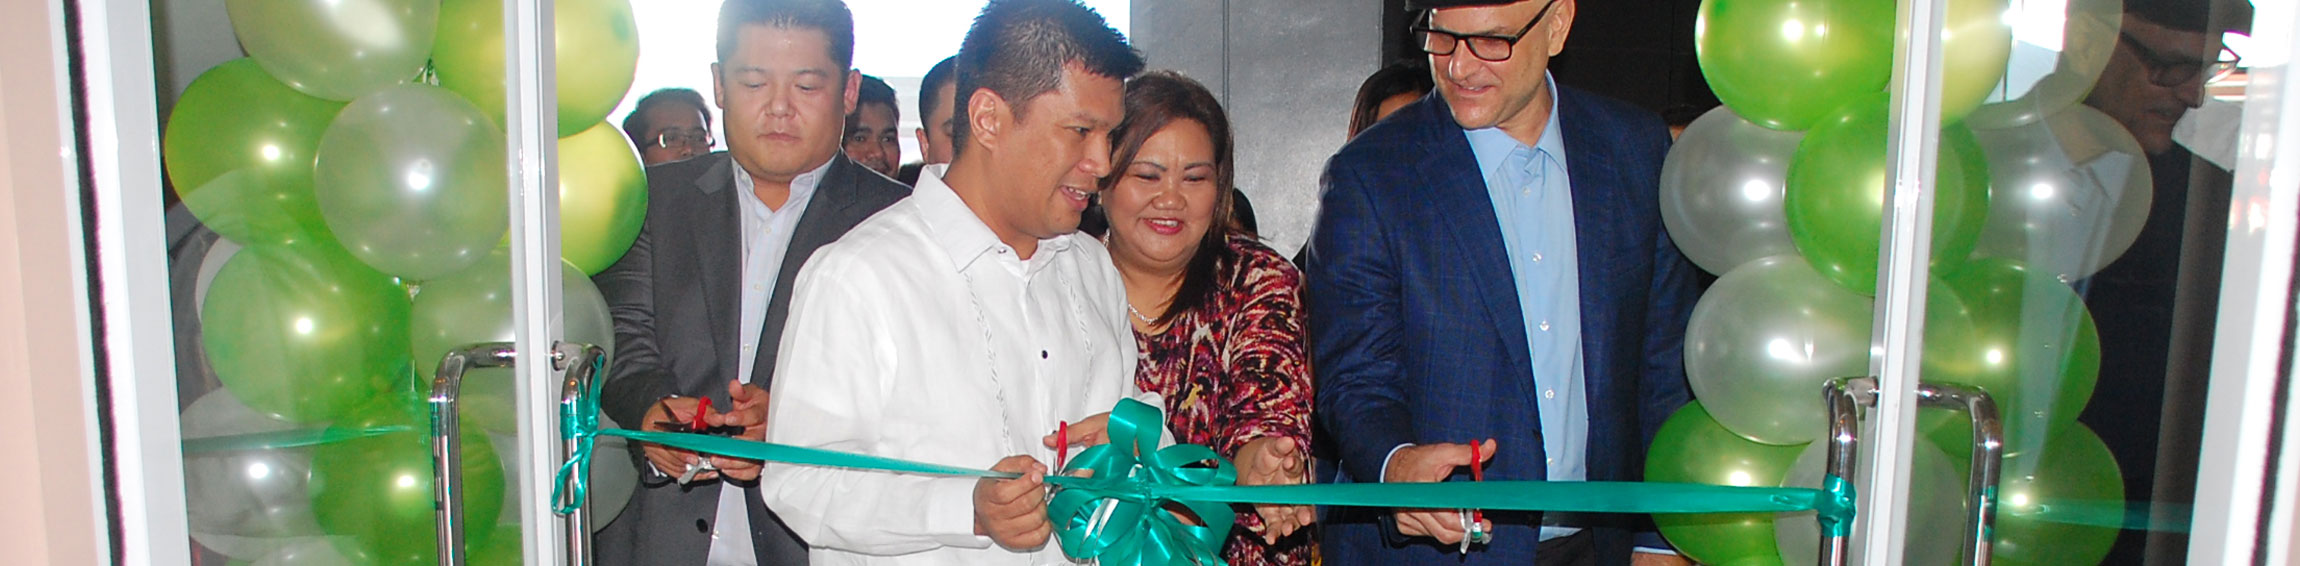 Open Access BPO targets market flexibility after Davao office launch